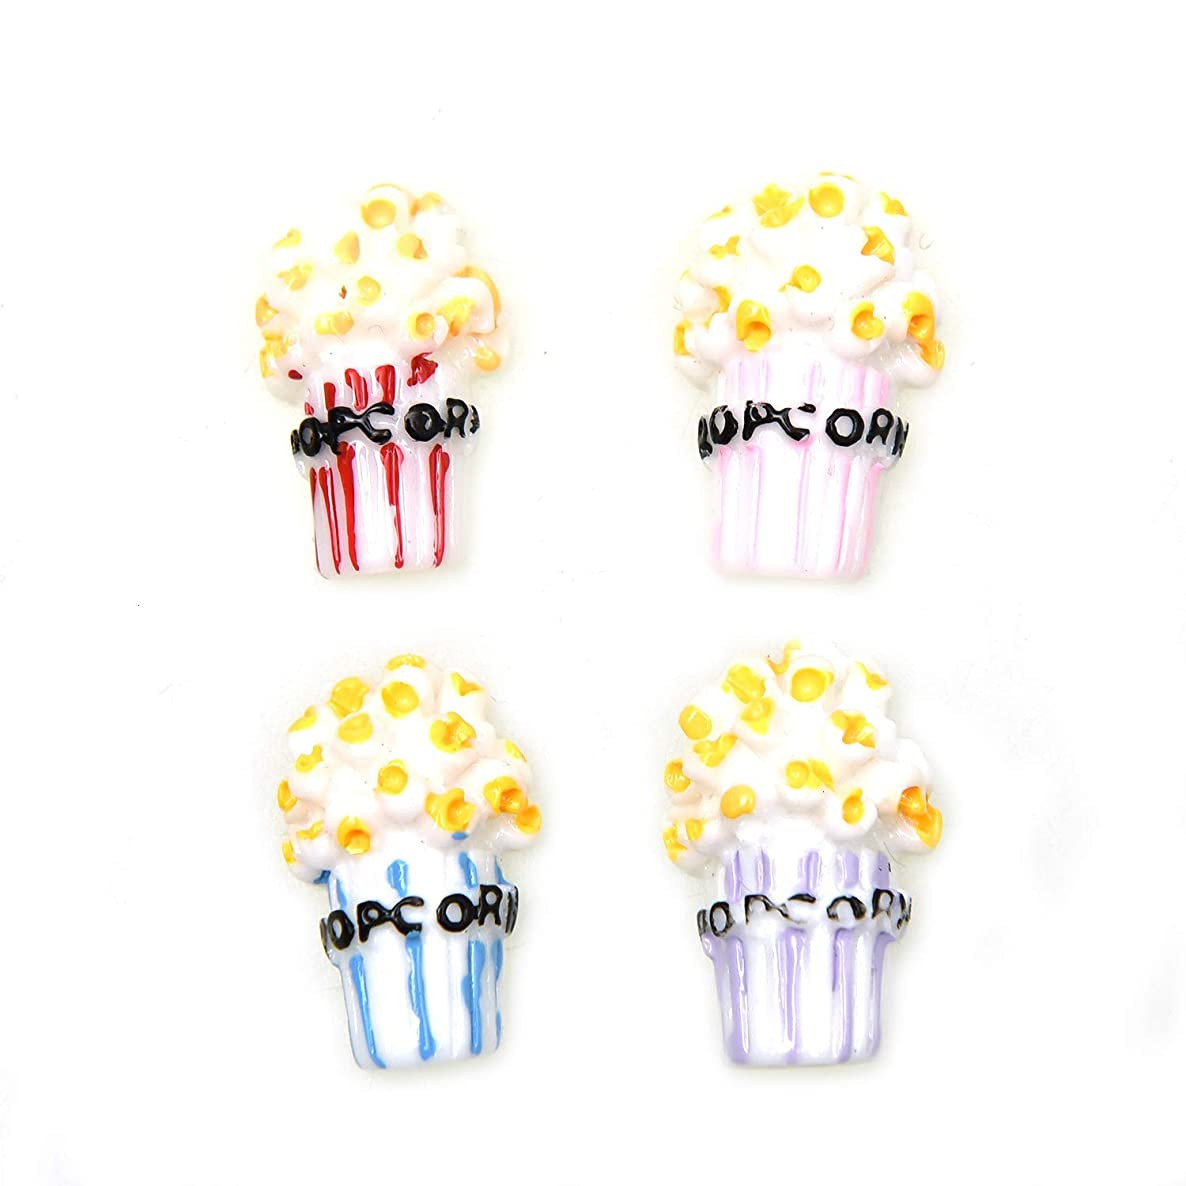 Monrocco 40Pcs Popcorn Slime Charms Resin Flatback for Craft Making,DIY Scrapbooking Accessories